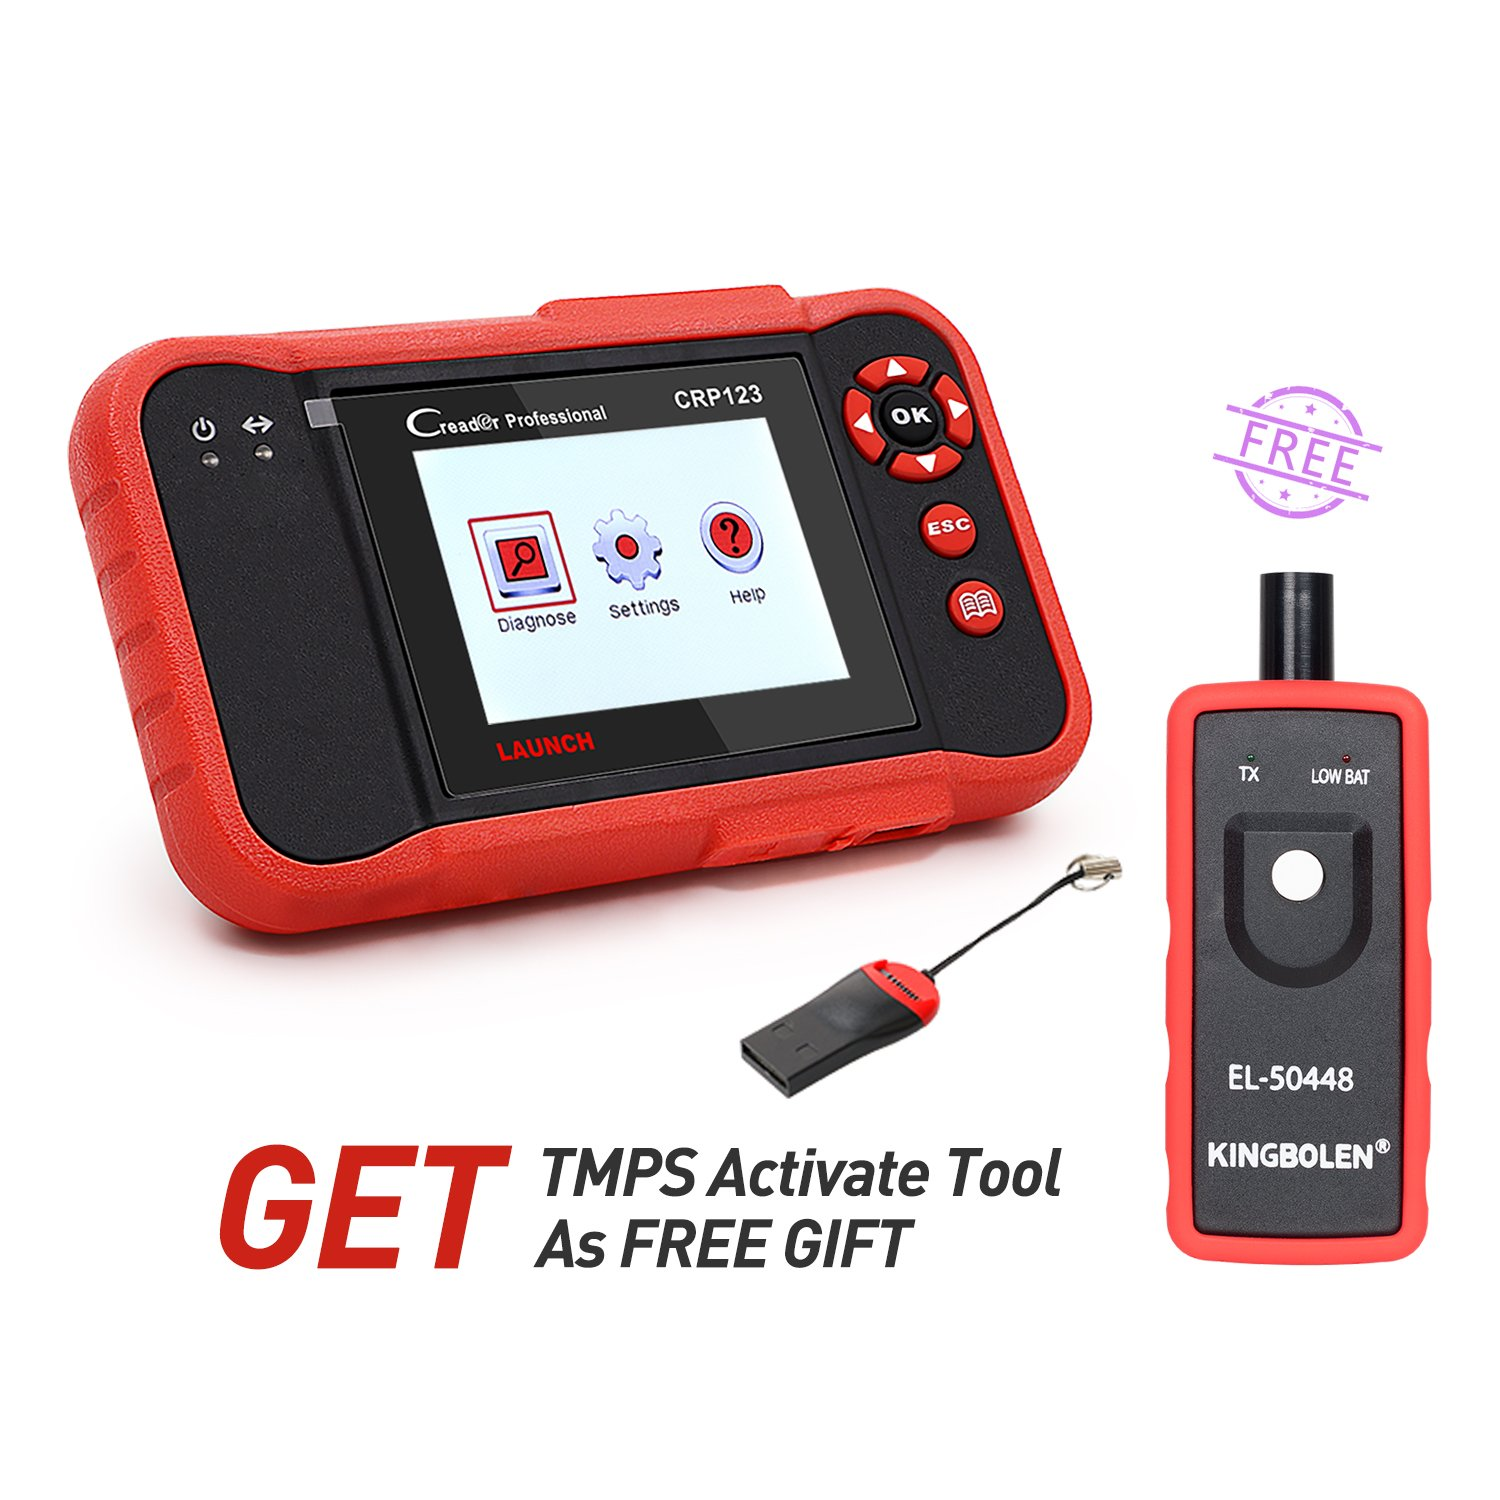 Launch X431 Creader CRP123 Diagnostic Tool OBD2 Auto Code Reader Support four basic systems(ENG/TCM/ABS/SRS) EOBD Scanner with EL-50448 as free gift